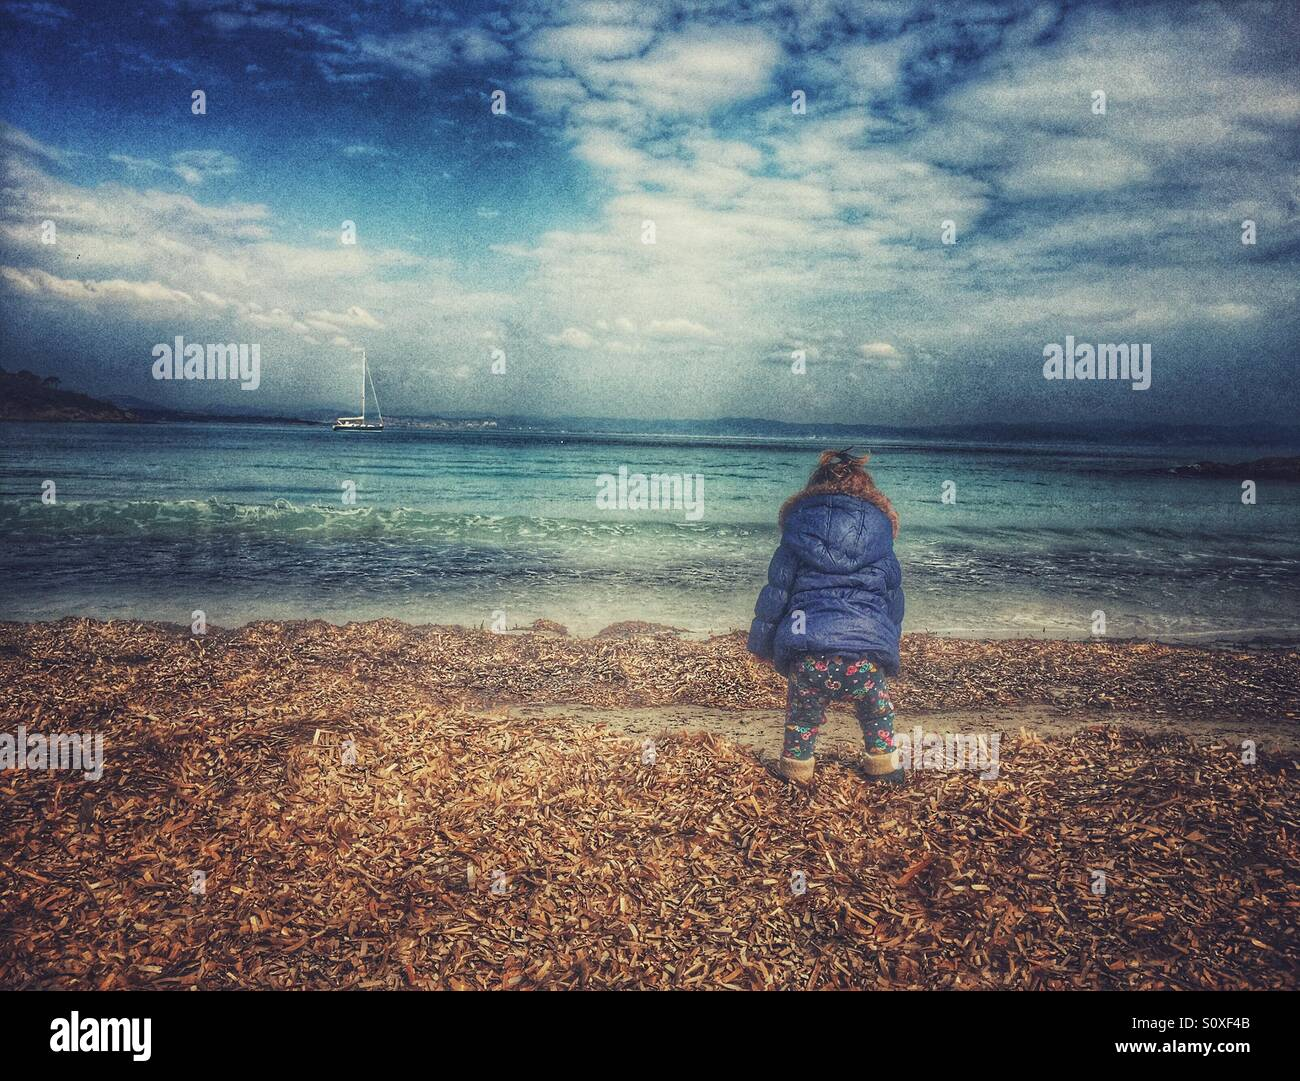 Baby At the beach in winter - Stock Image